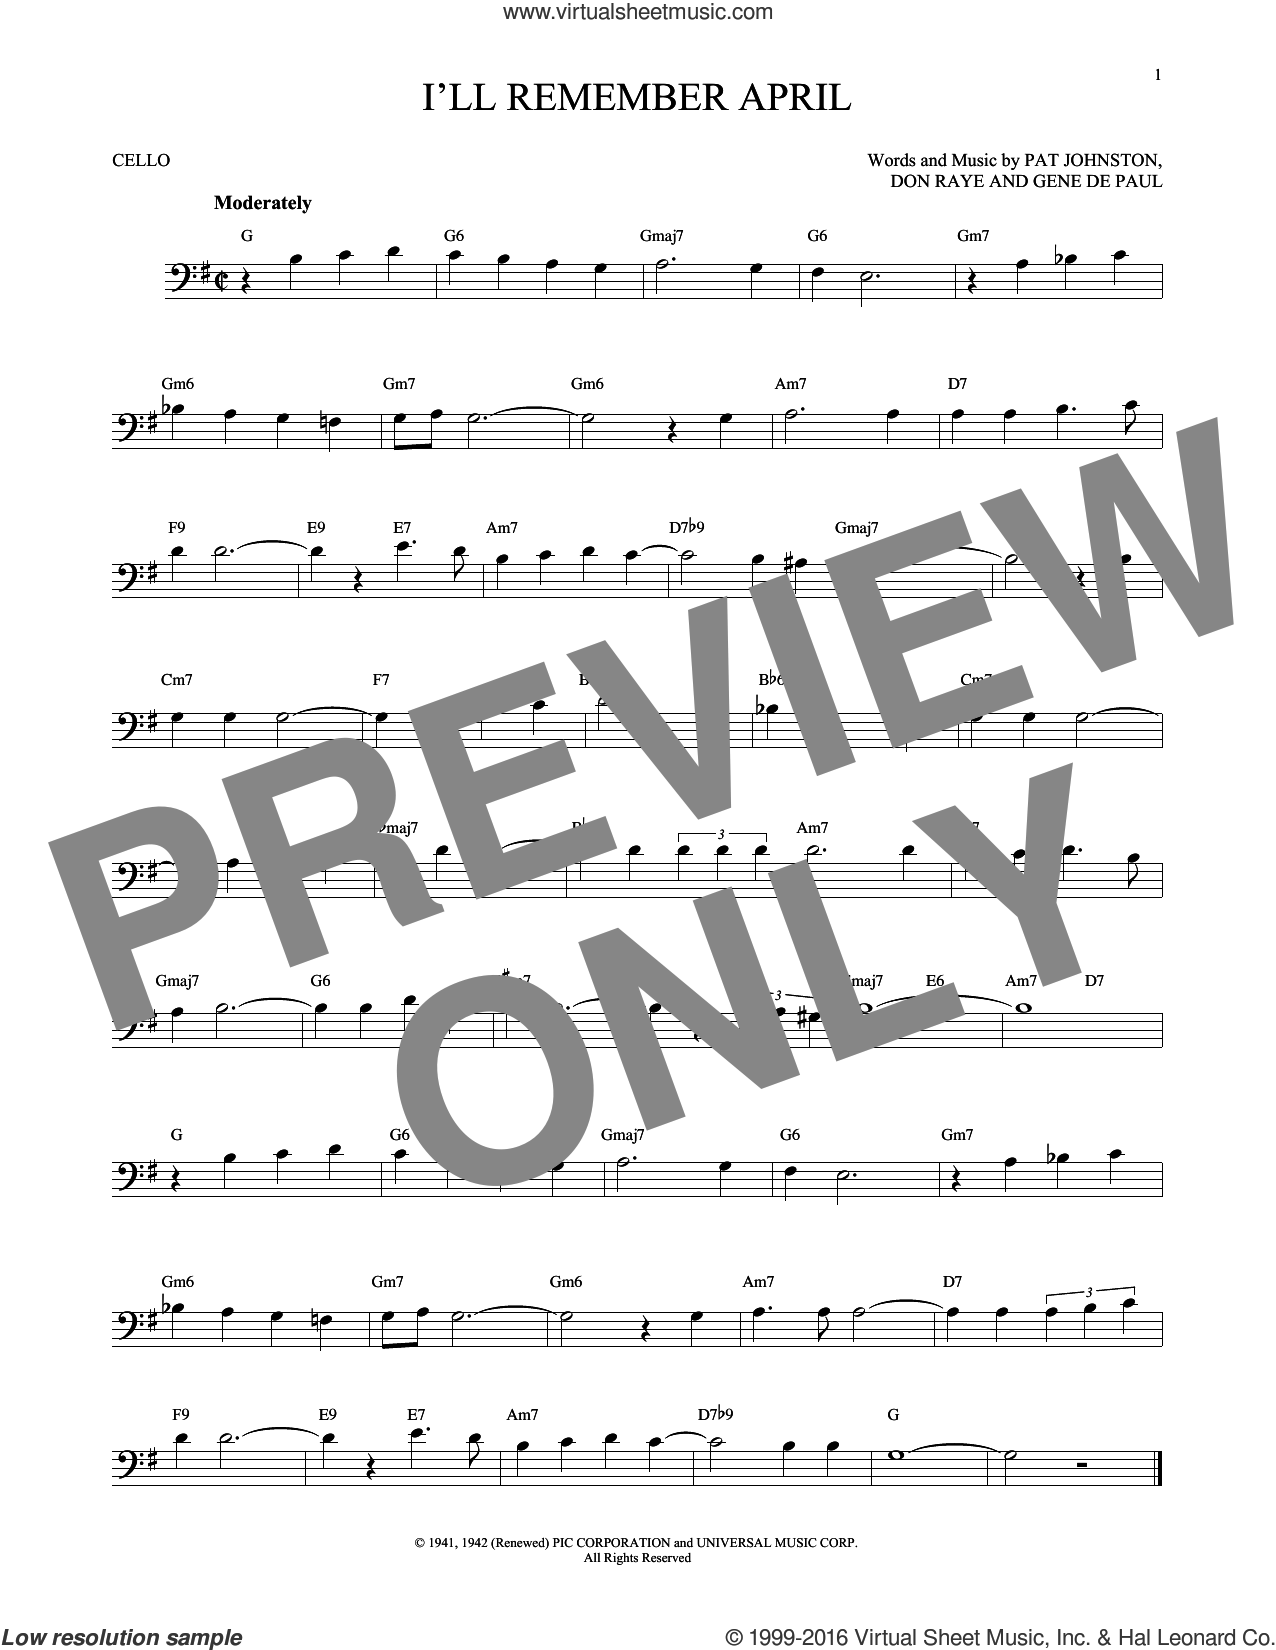 I'll Remember April sheet music for cello solo by Woody Herman & His Orchestra, Don Raye and Gene DePaul, intermediate. Score Image Preview.